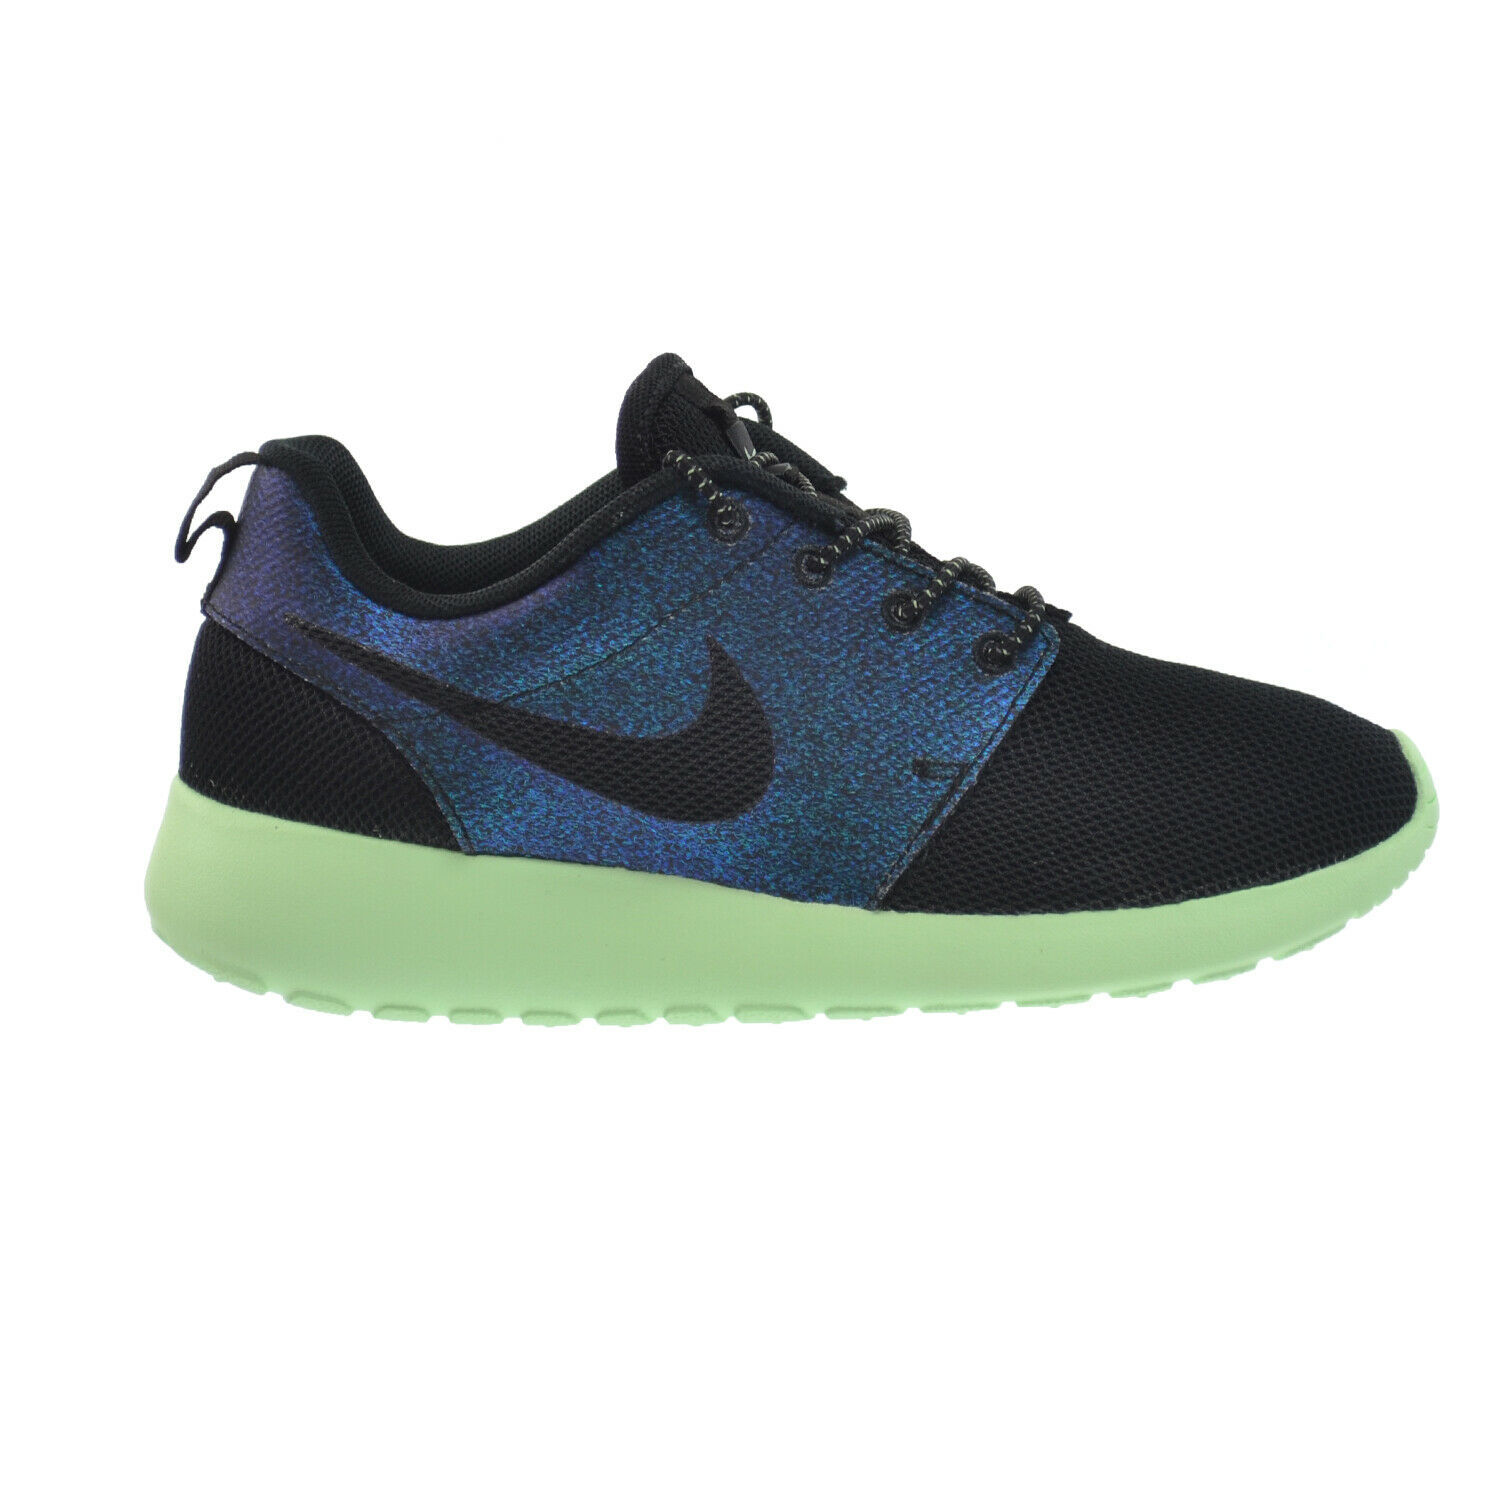 Primary image for Nike Roshe One WWC QS Womens' Shoes Teal-Black-Vapor Green-Black 808708-303